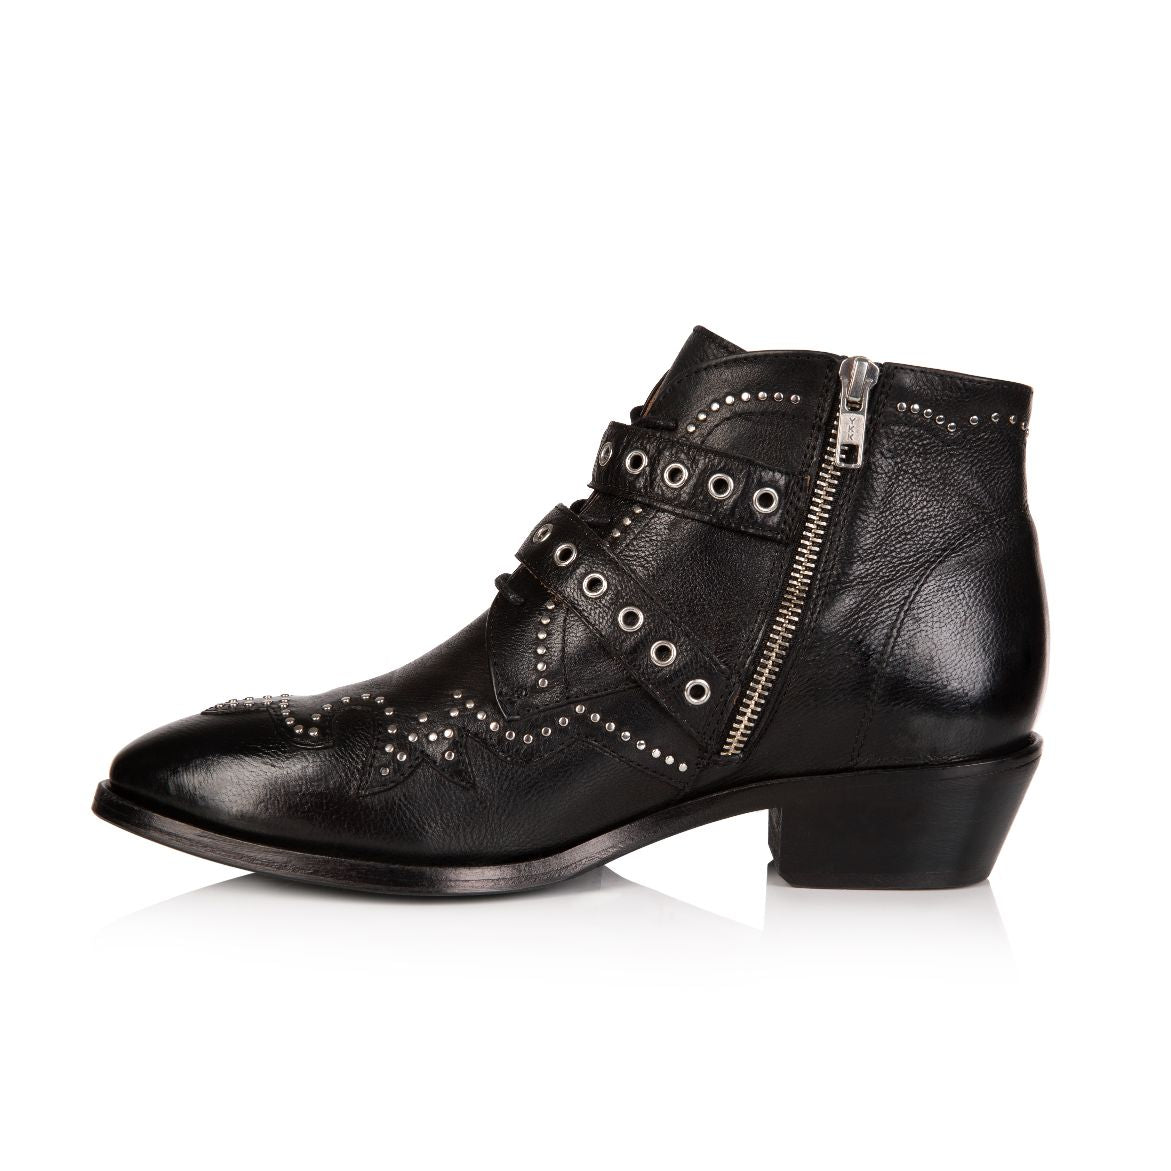 STARLIGHT: BLACK LEATHER ANKLE BOOTS